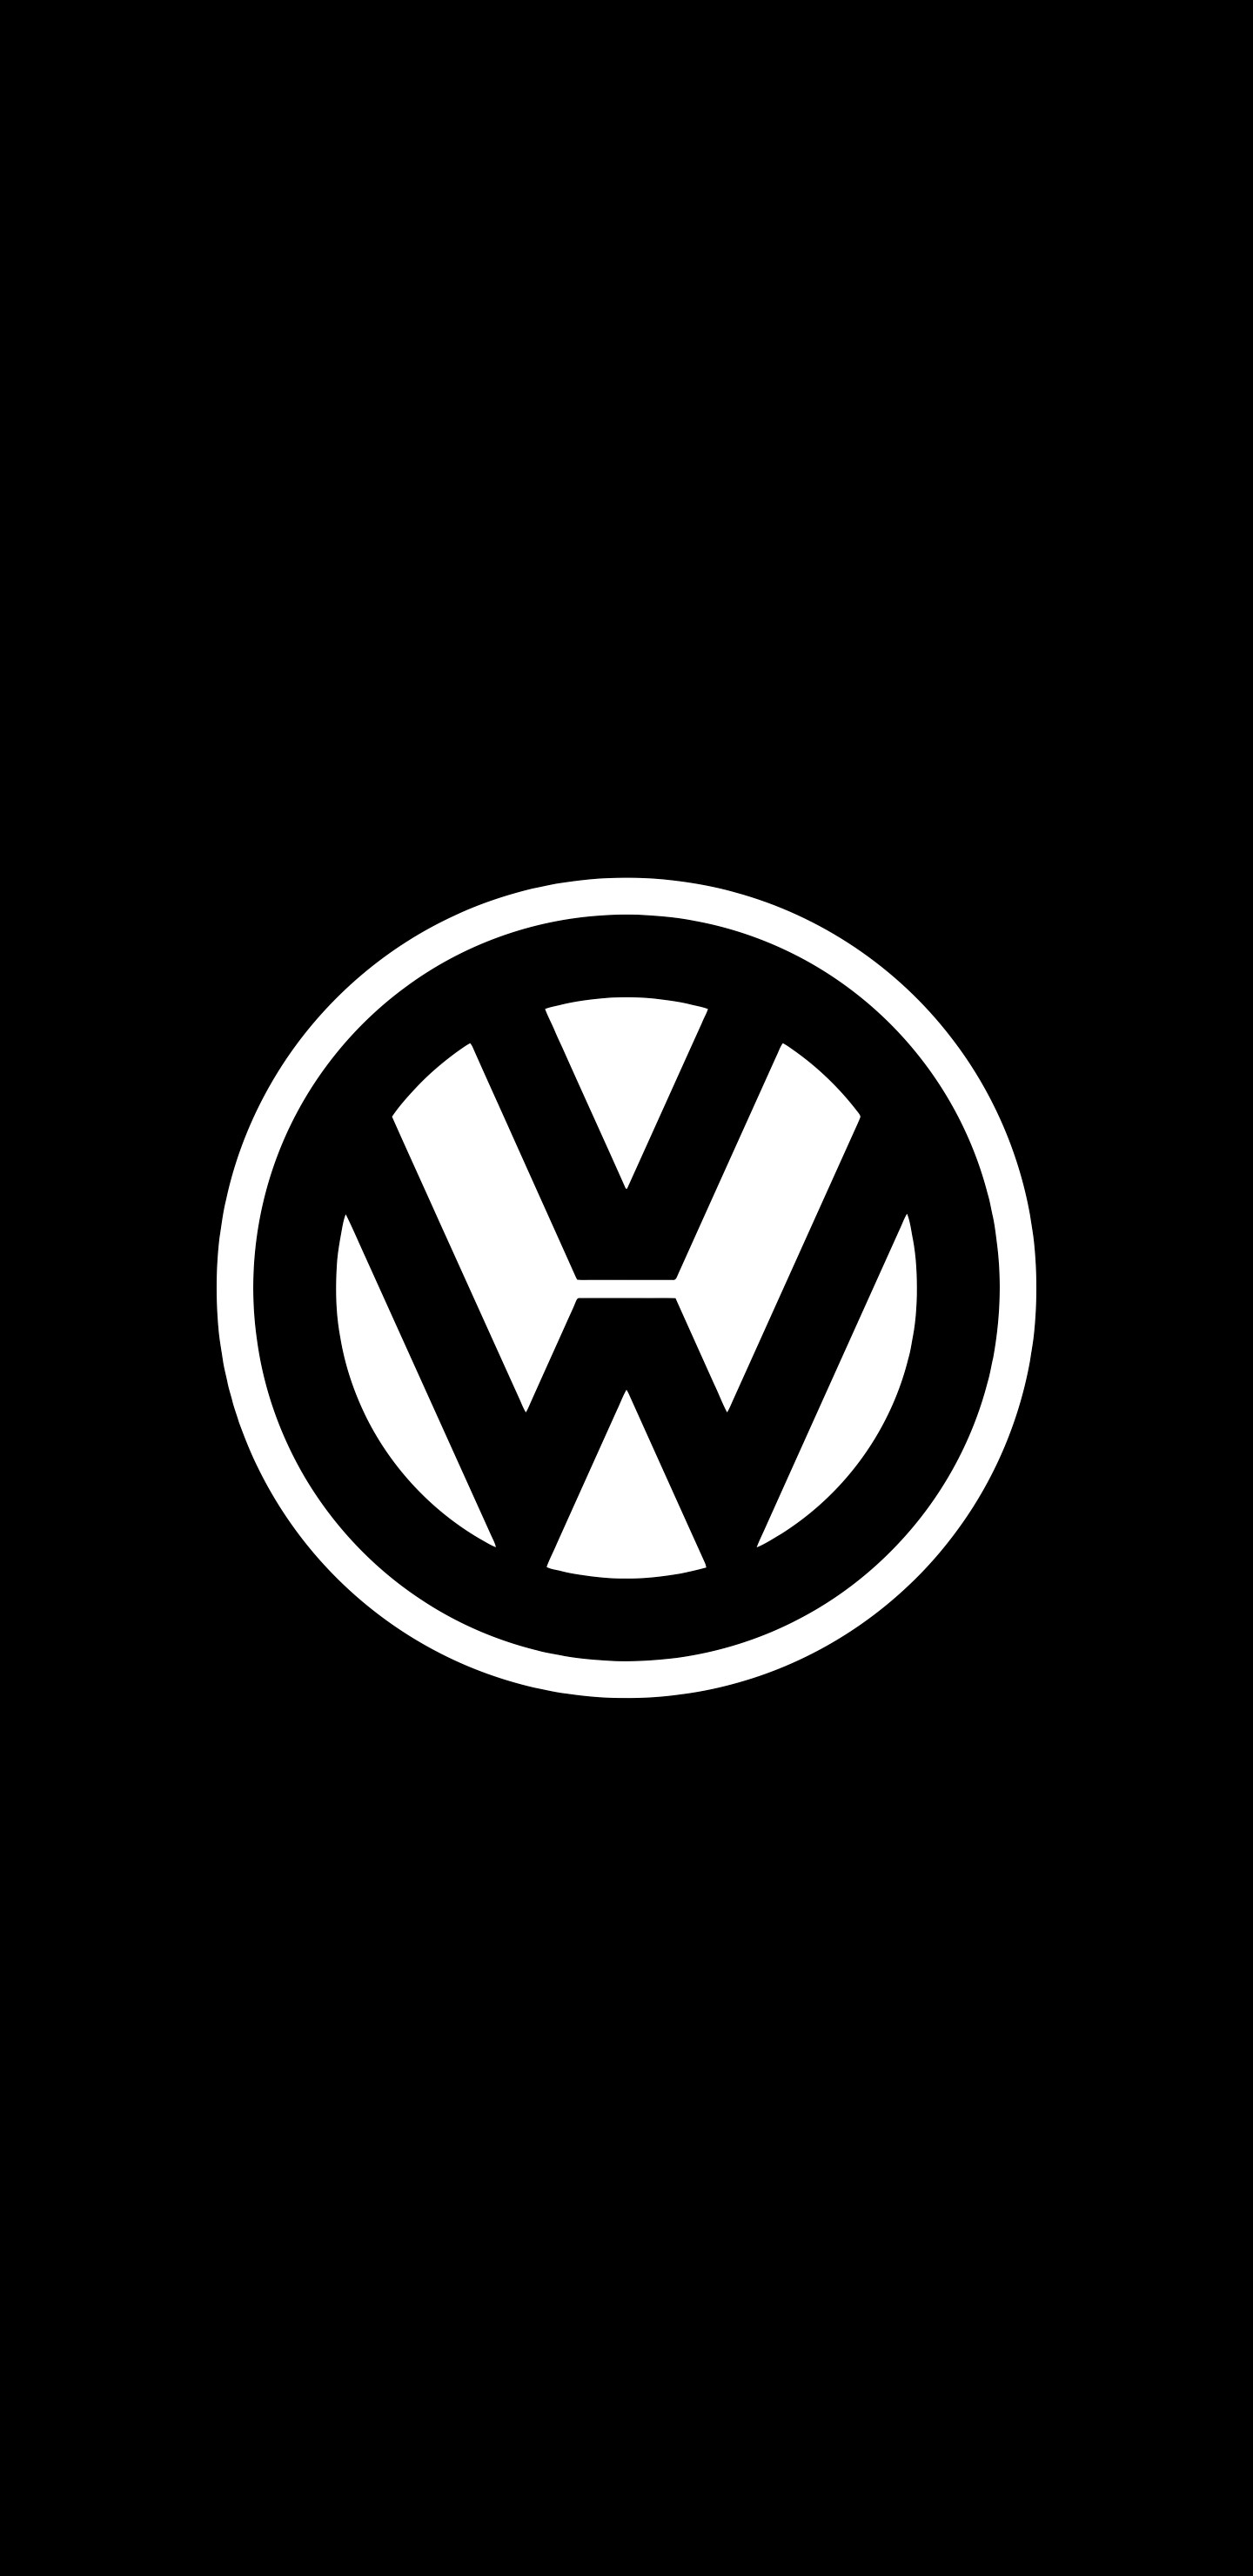 Res: 1440x2960, Volkswagen Logo - Fulfilled Request [] ...